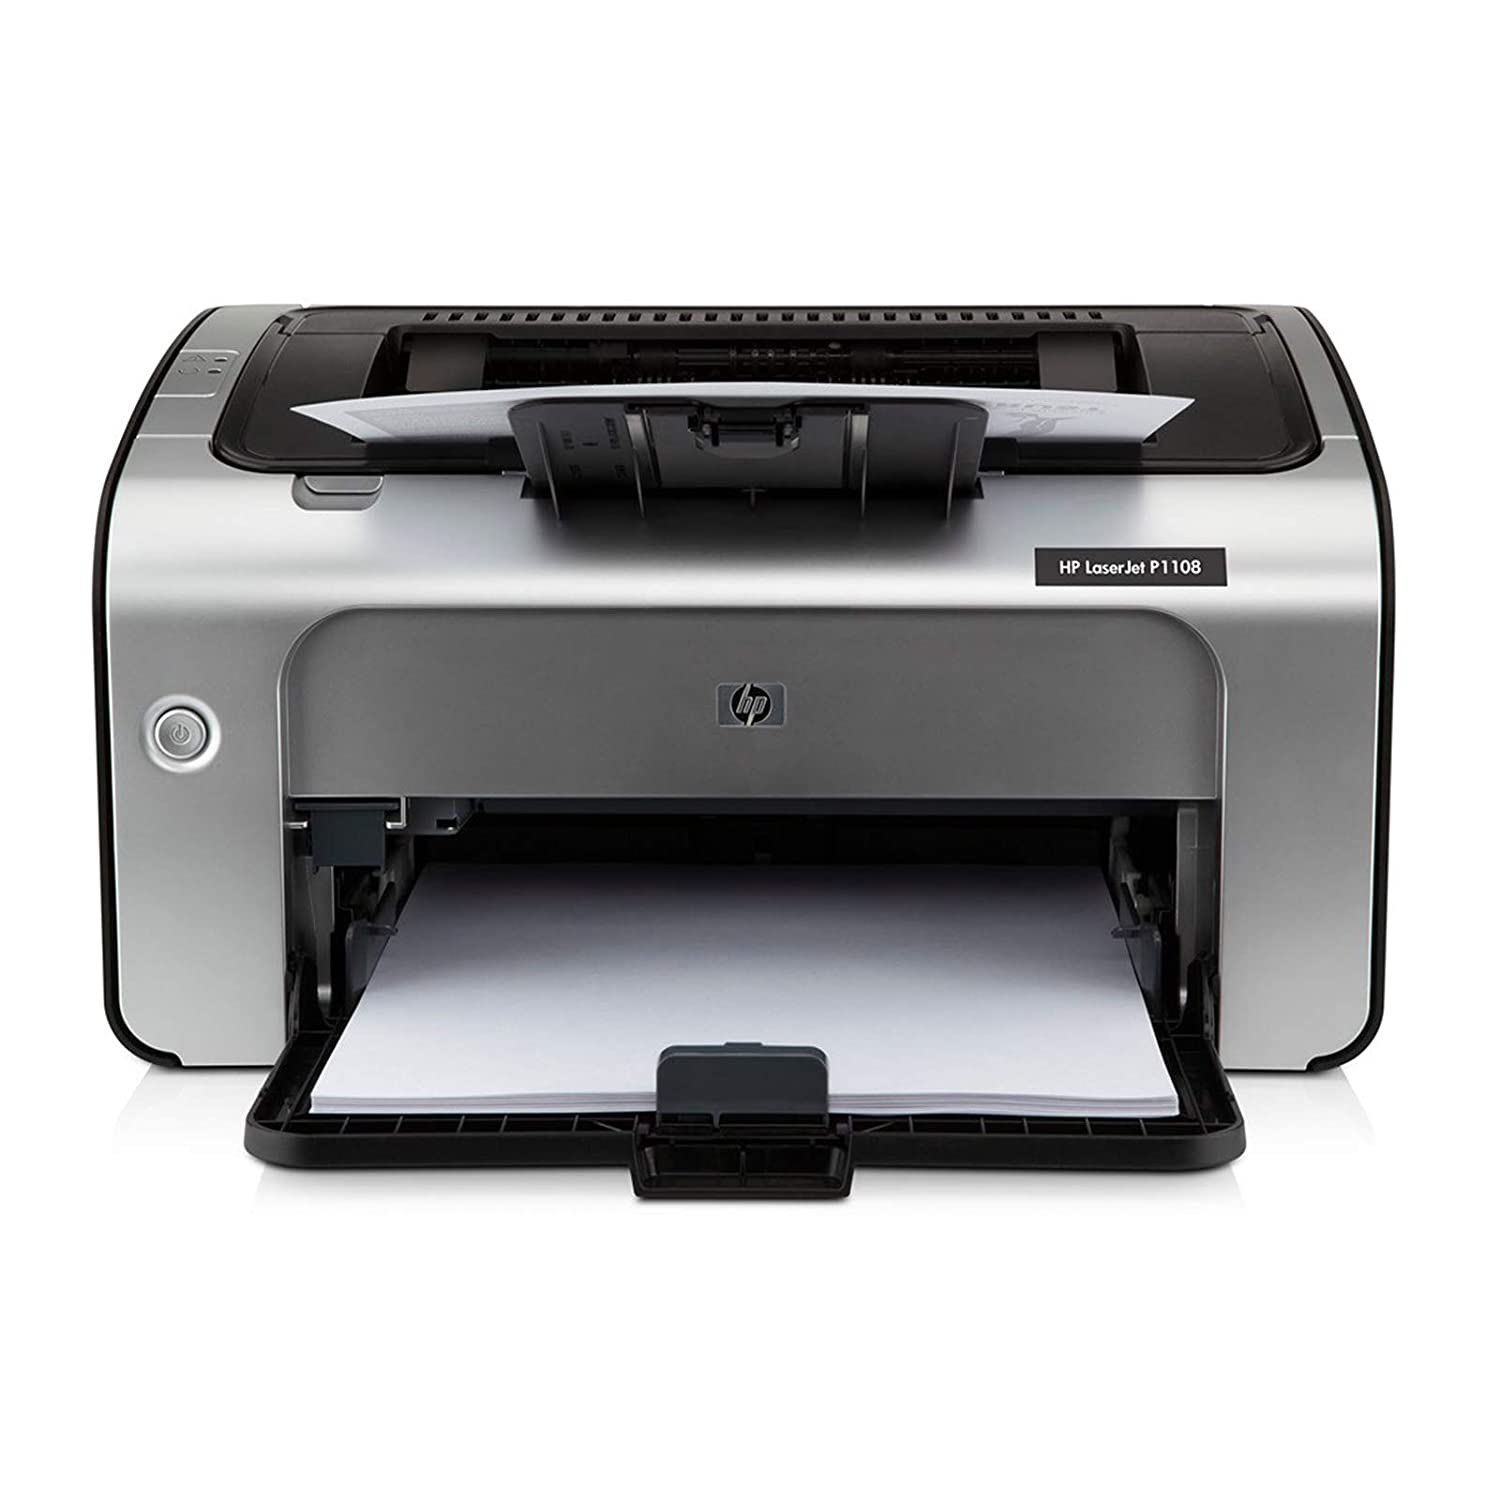 Amazon.in: Buy HP Laserjet P1108 Single Function Monochrome Laser Printer Online at Low Prices in India | HP Reviews & Ratings